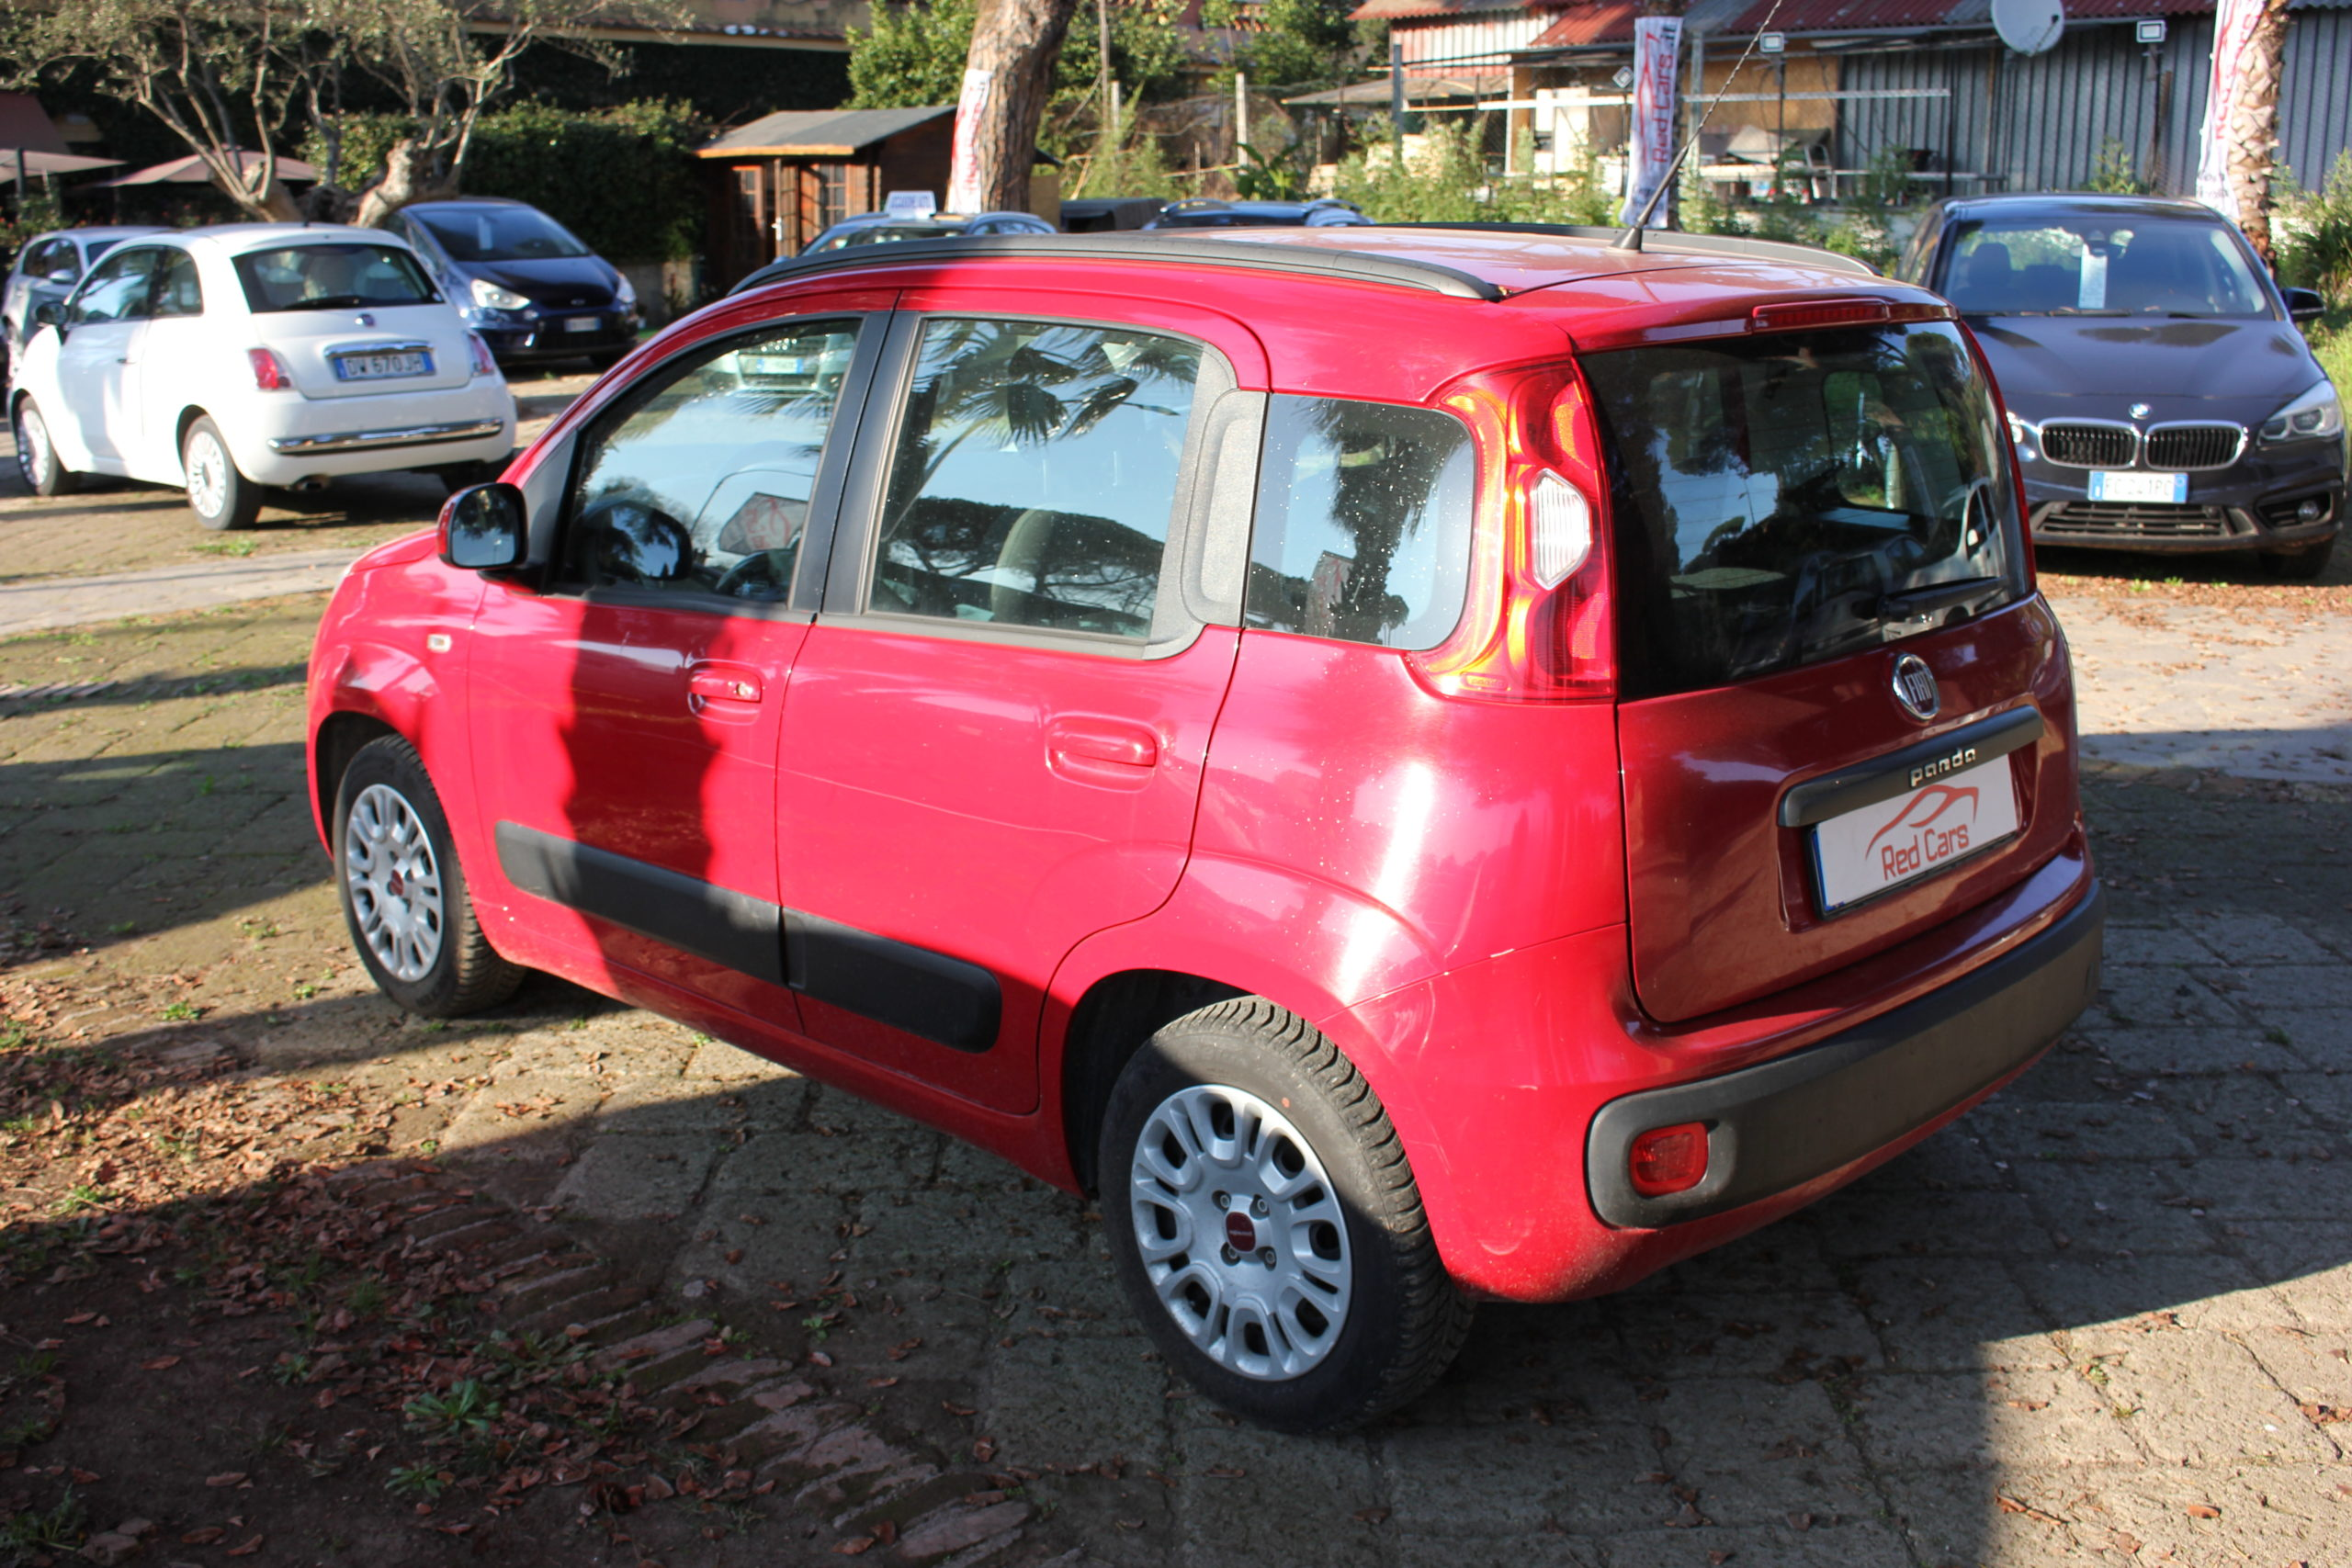 vendita FIAT PANDA 1.2 GPL POP STAR Red cars via cropani 65 Roma